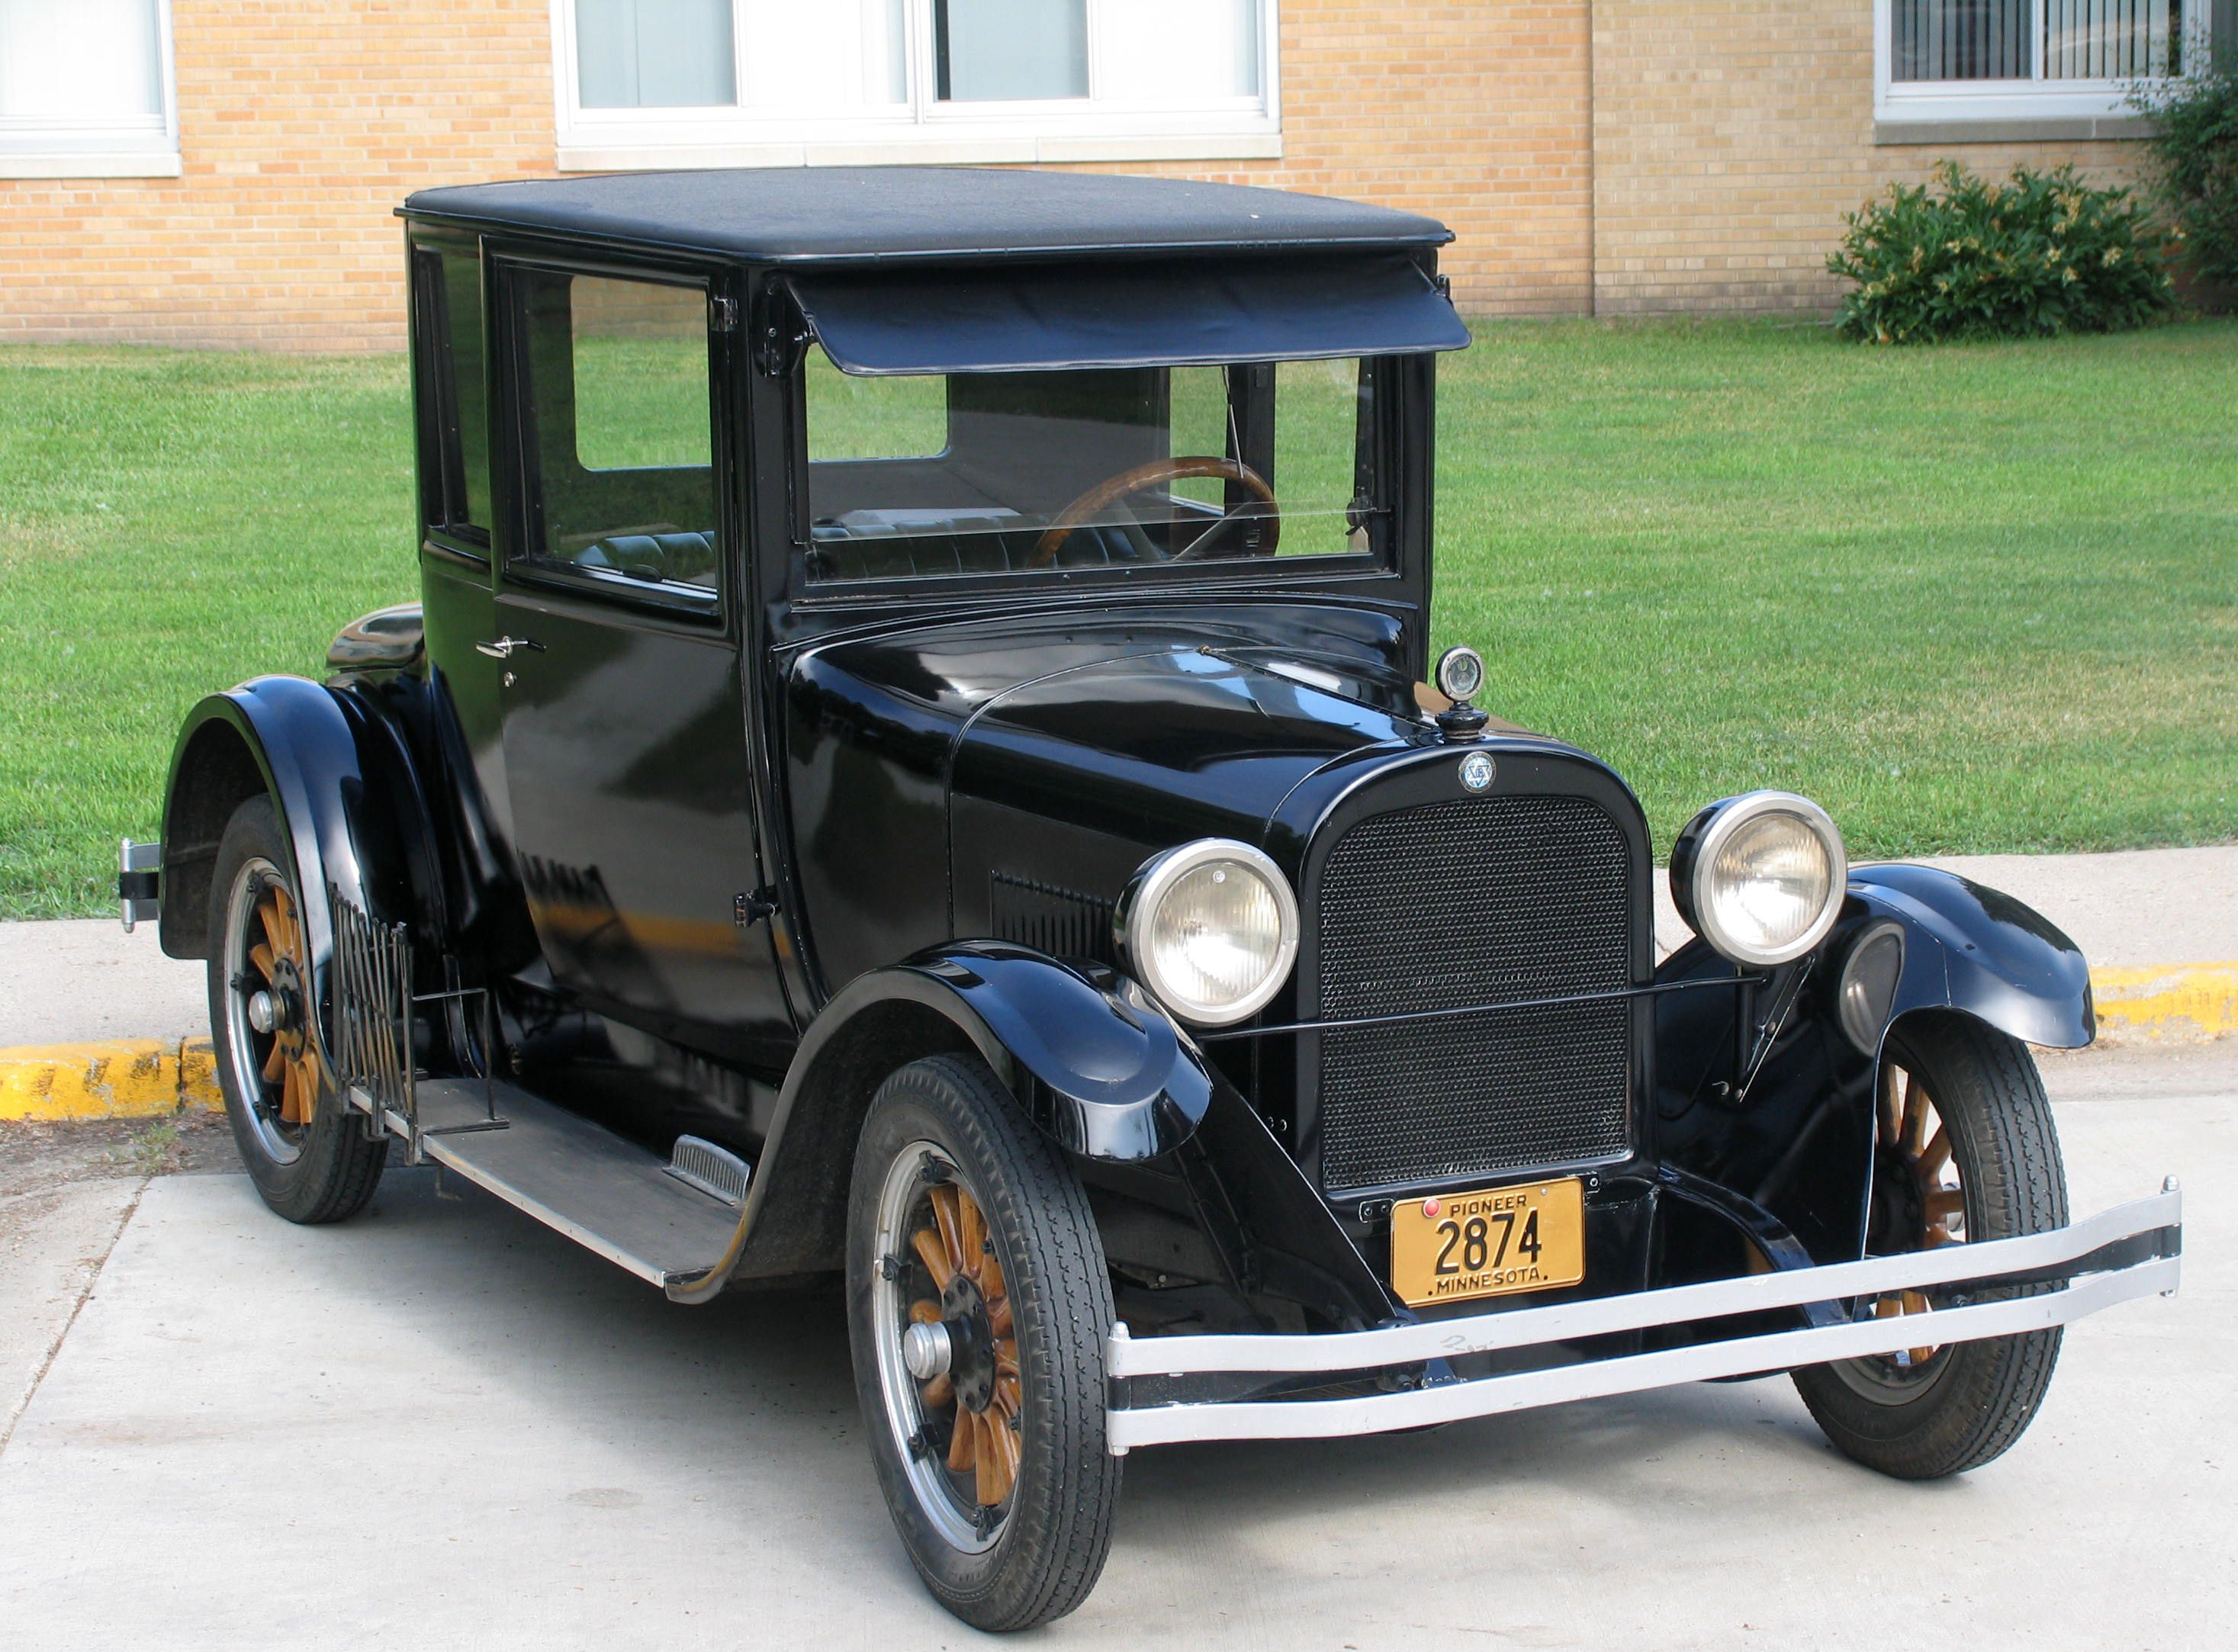 An Antique Car   Car Picture   Pinterest   Cars, Car pictures and ...